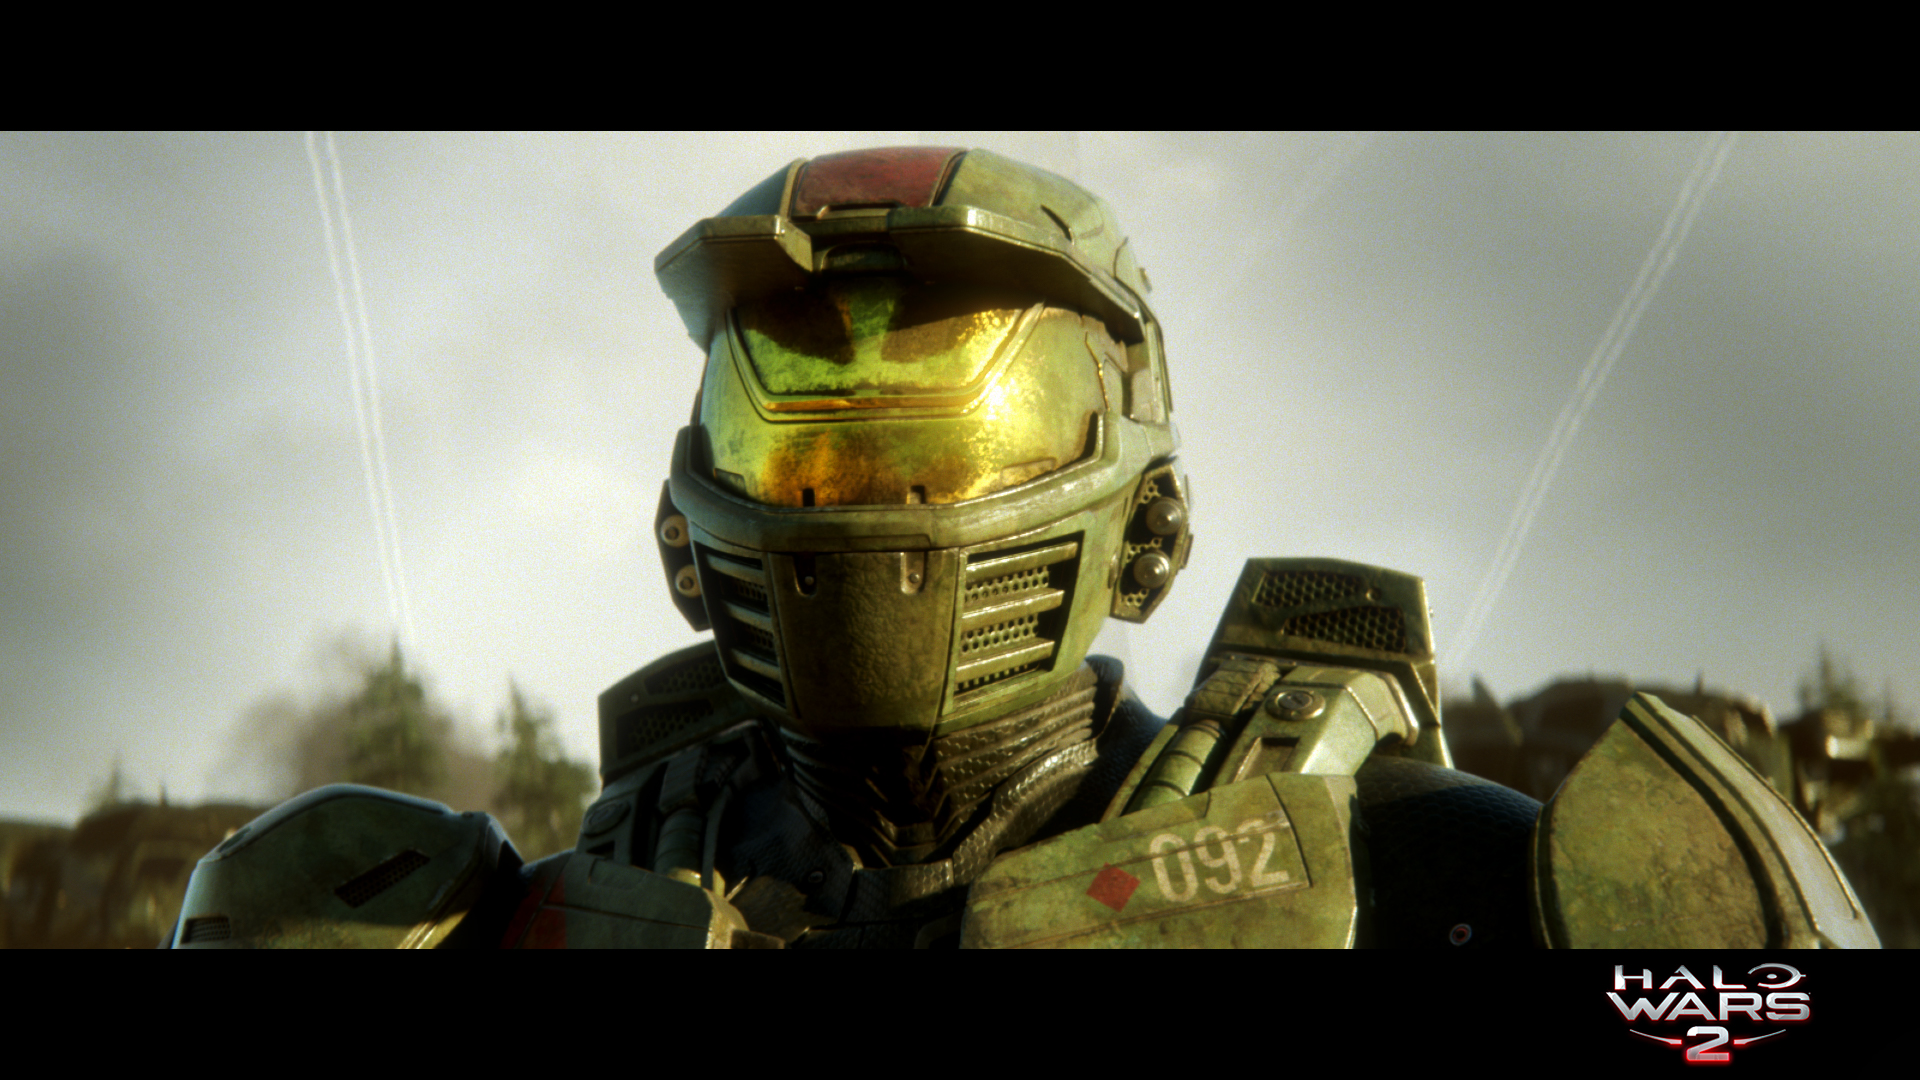 halo wars 2 jerome